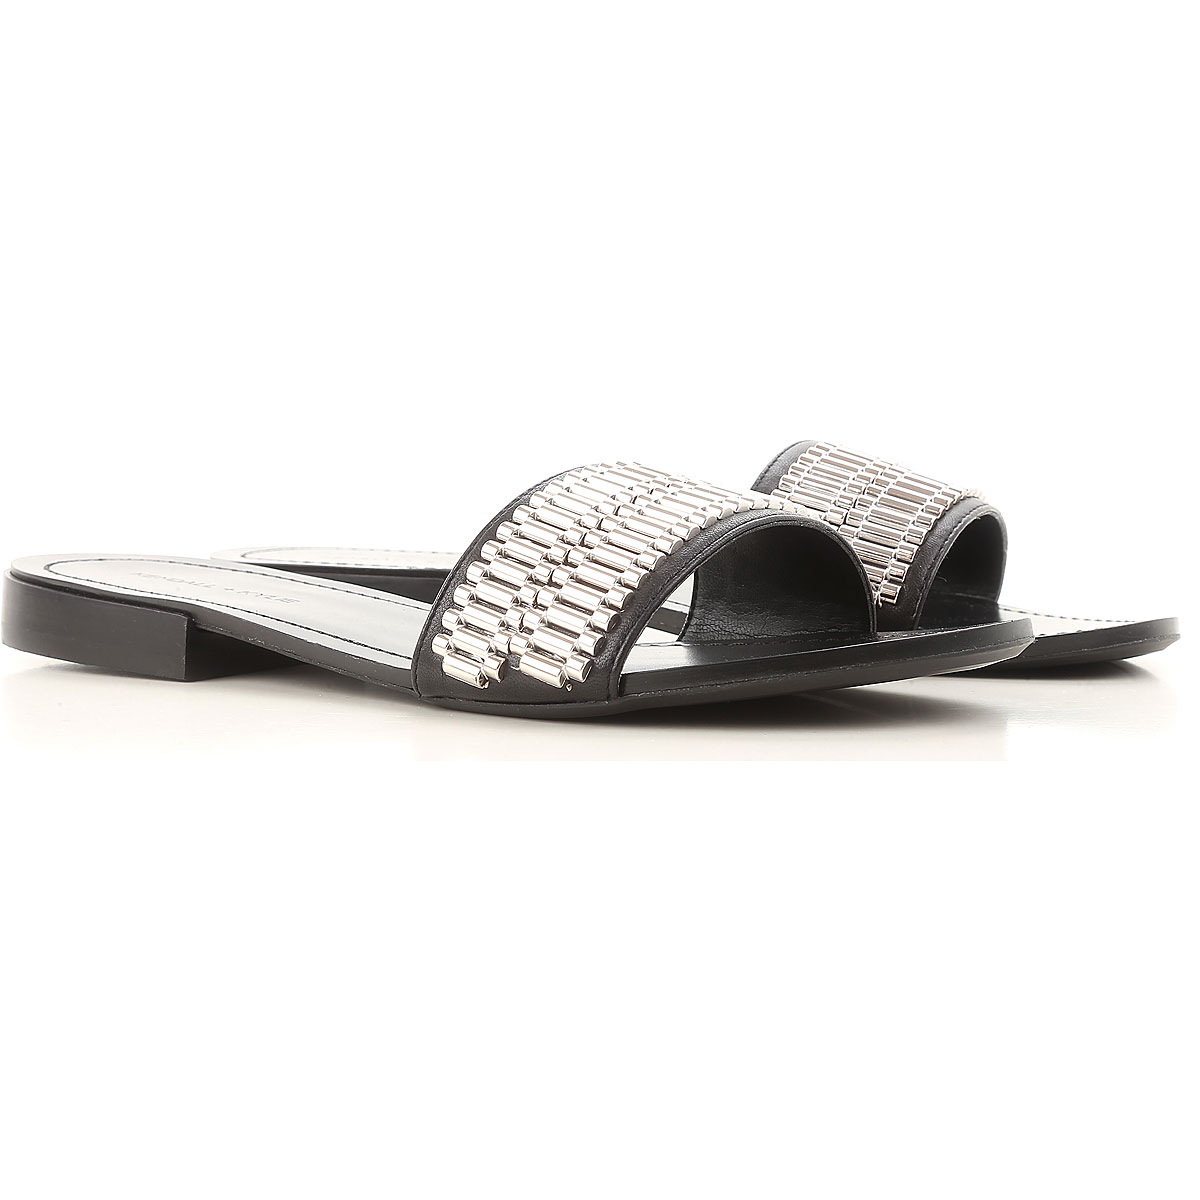 Kendall Kylie Sandals for Women On Sale in Outlet, Black, Nappa, 2019, 5.5 6.5 7